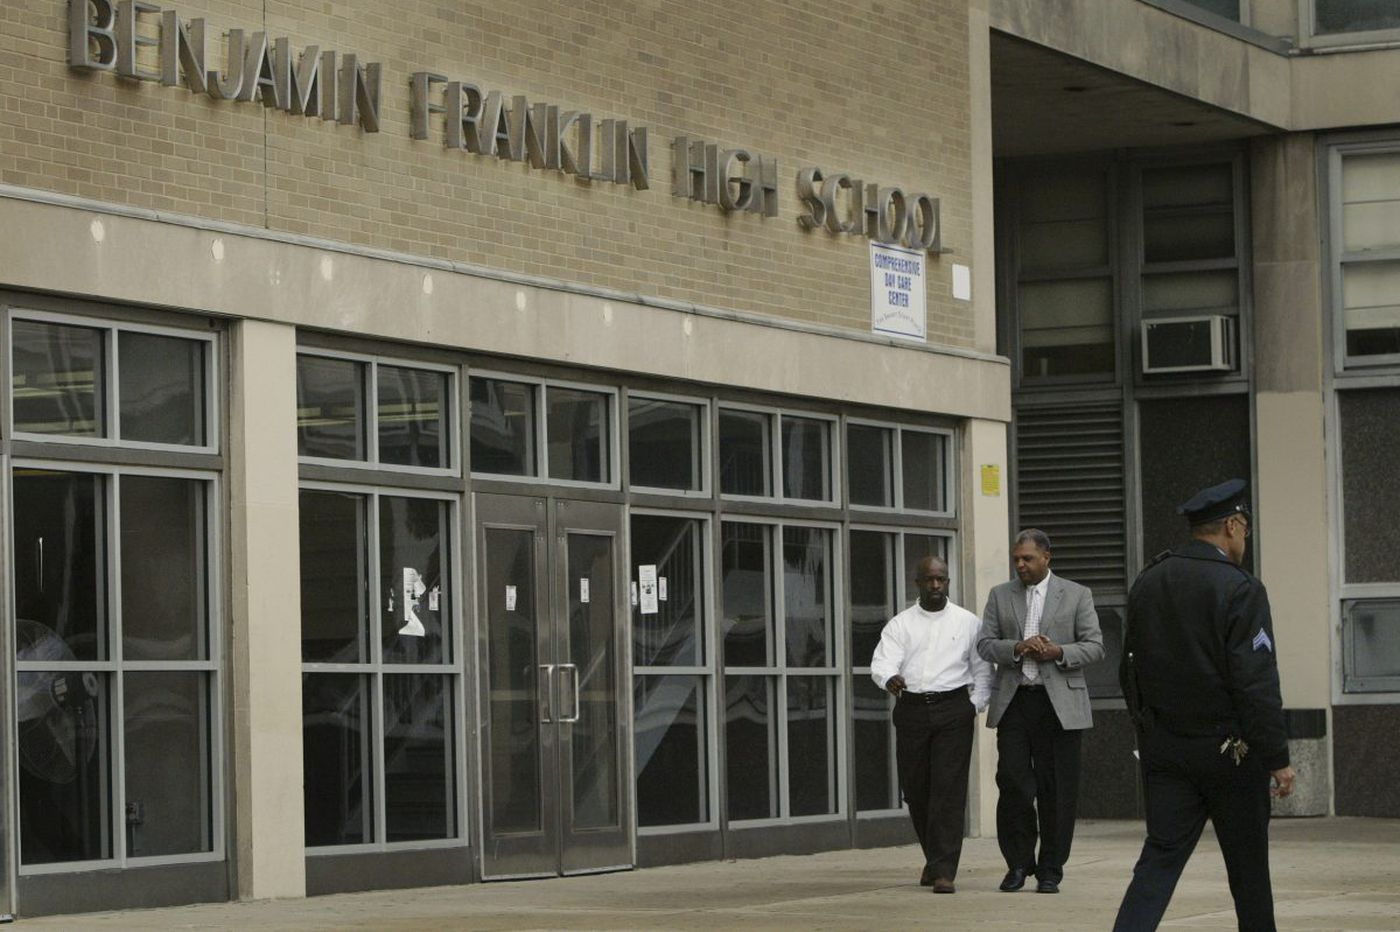 Top Philly magnet to relocate inside Ben Franklin High